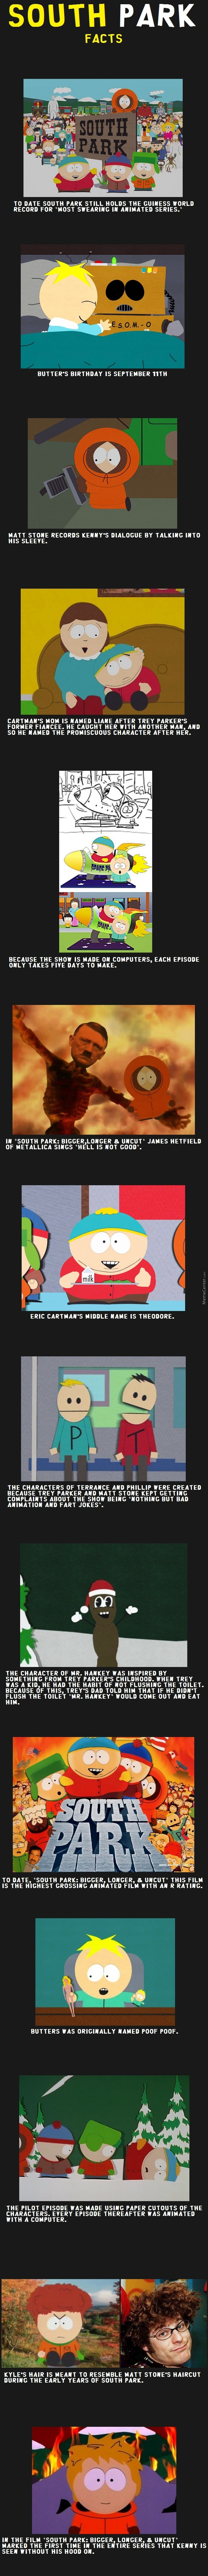 South Park Fact Compilation